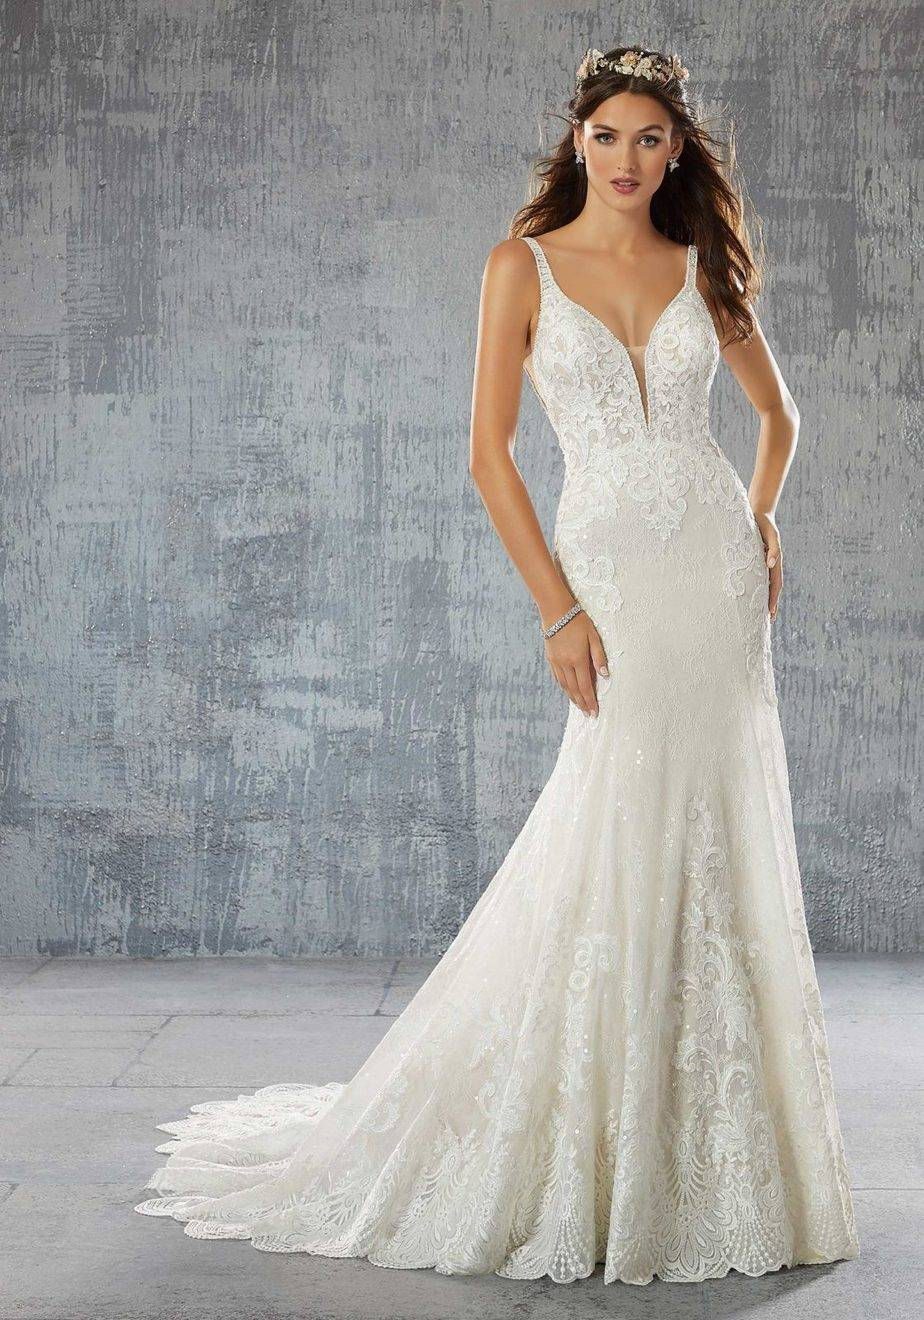 The Ultimate Guide To Mori Lee Wedding Dresses Wedding Shoppe,Dior Wedding Dress 2020 Price